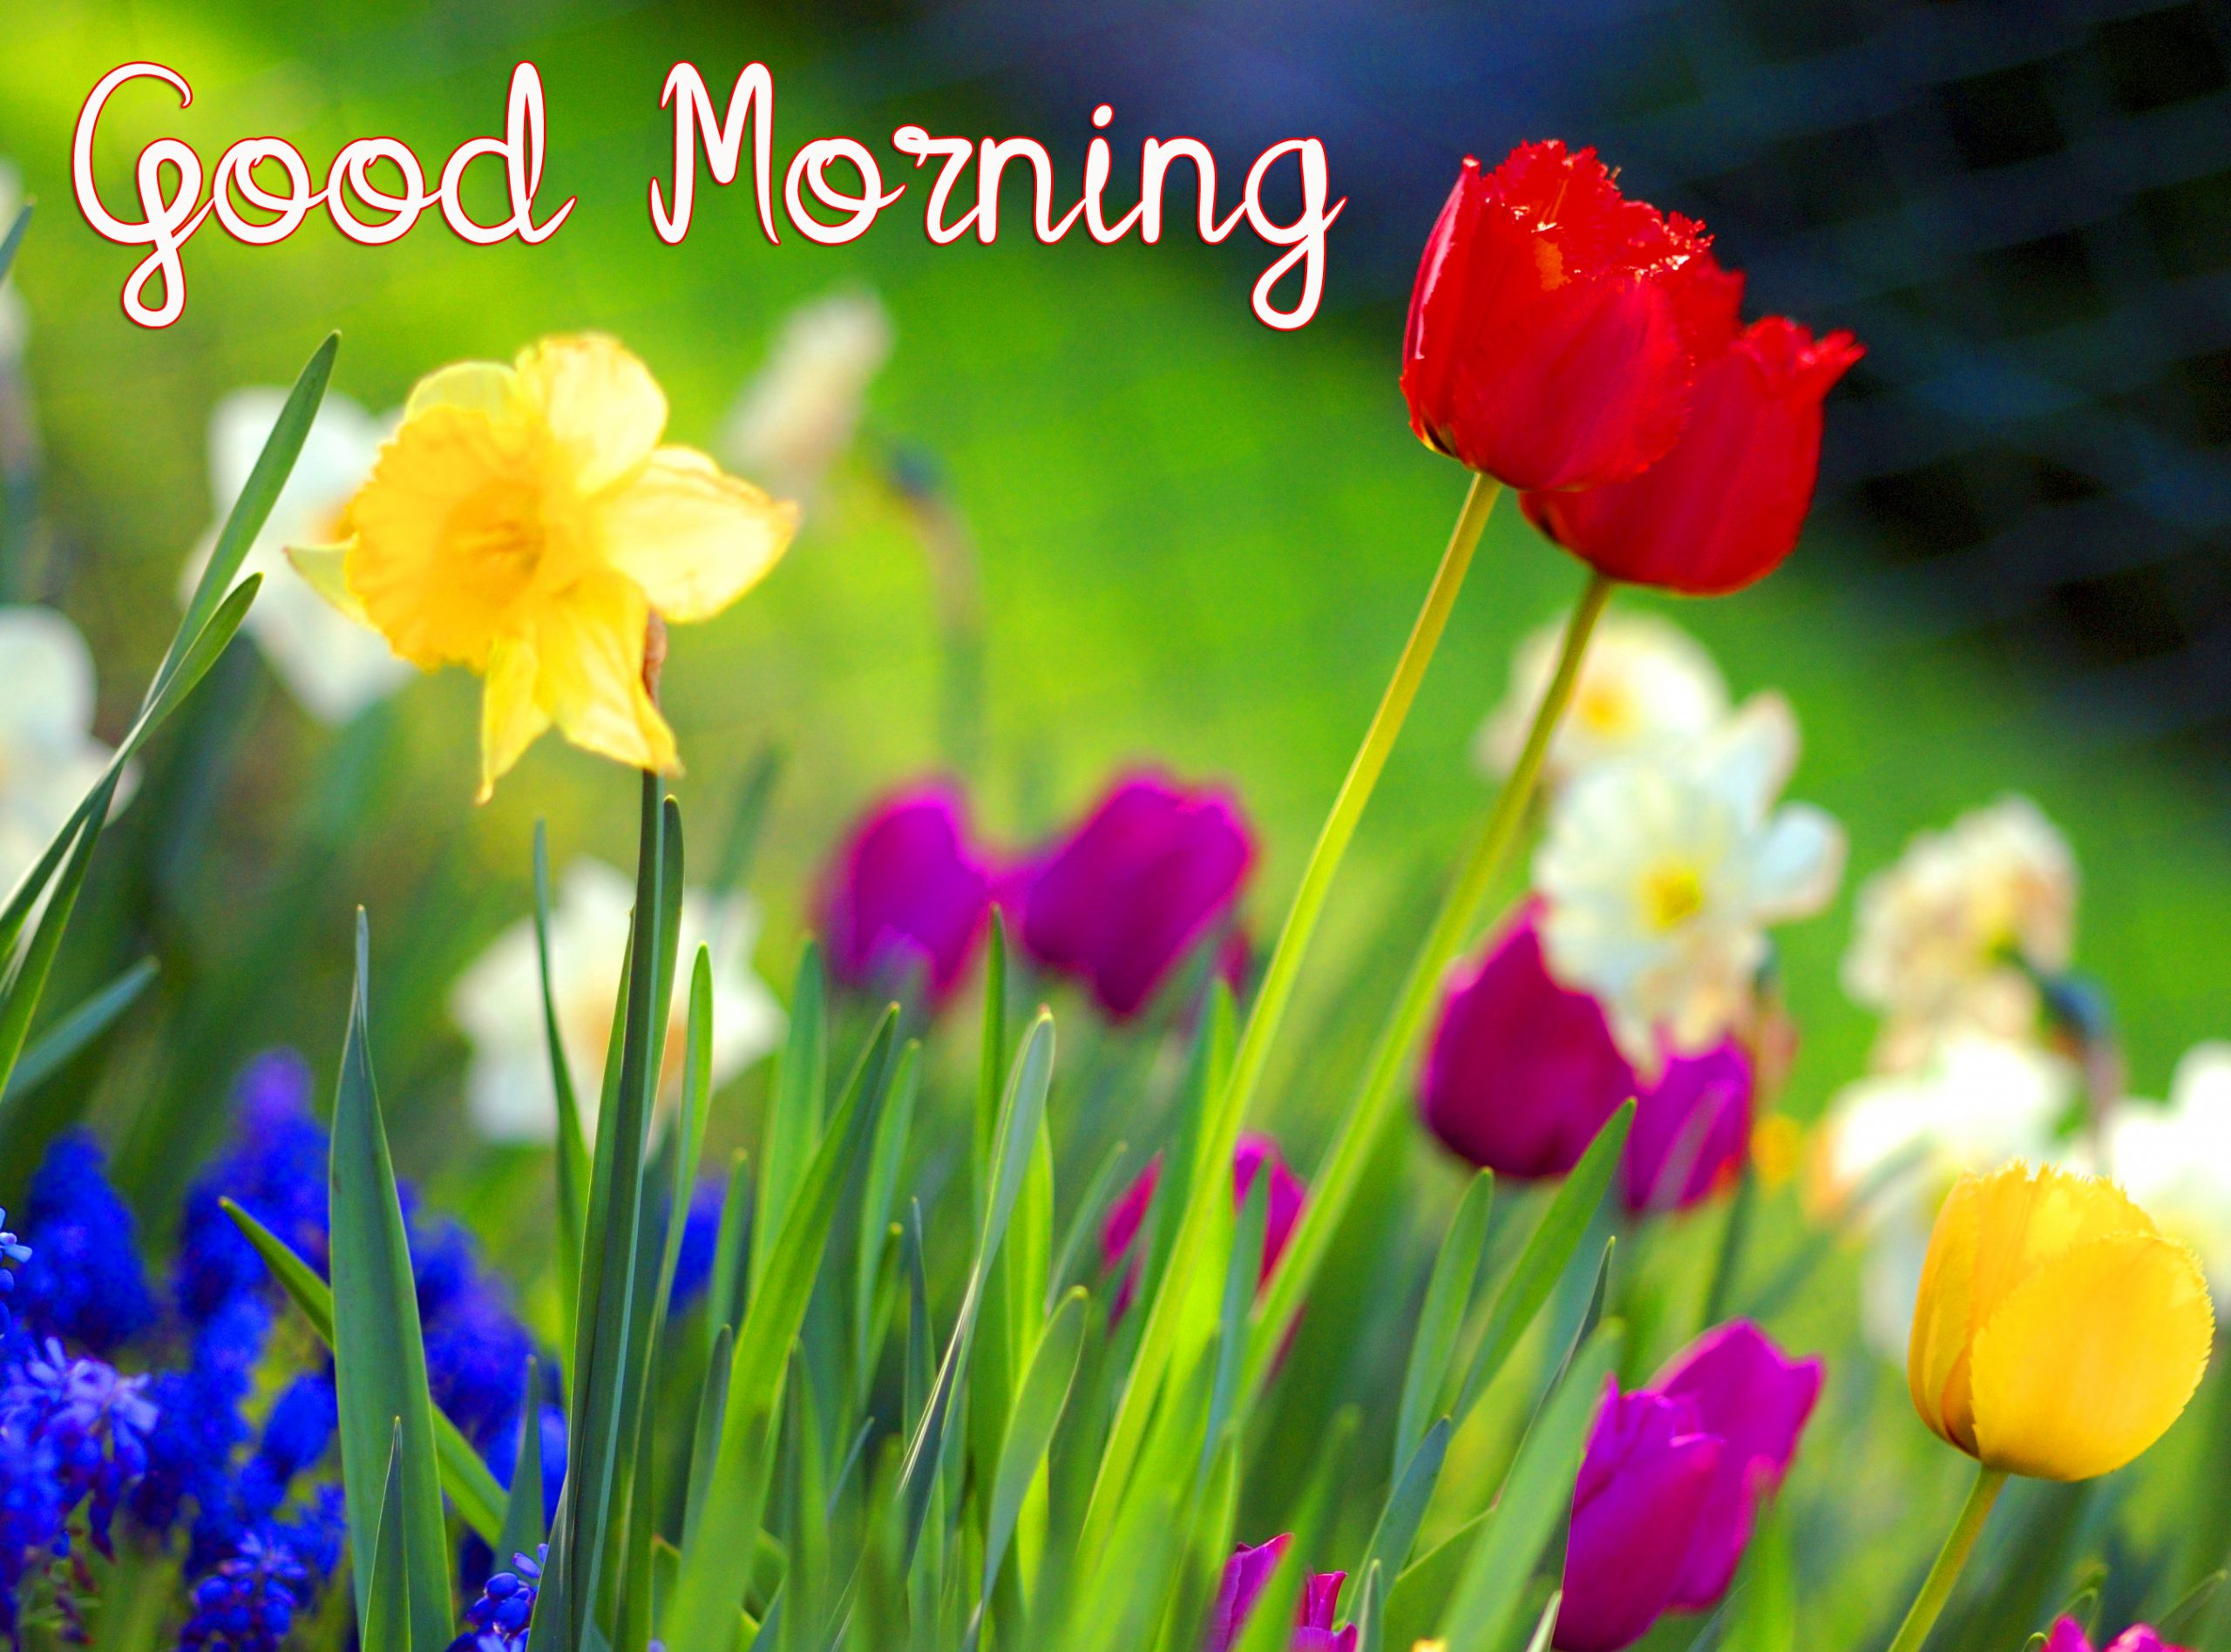 Spring Colorful Flowers Good Morning Image